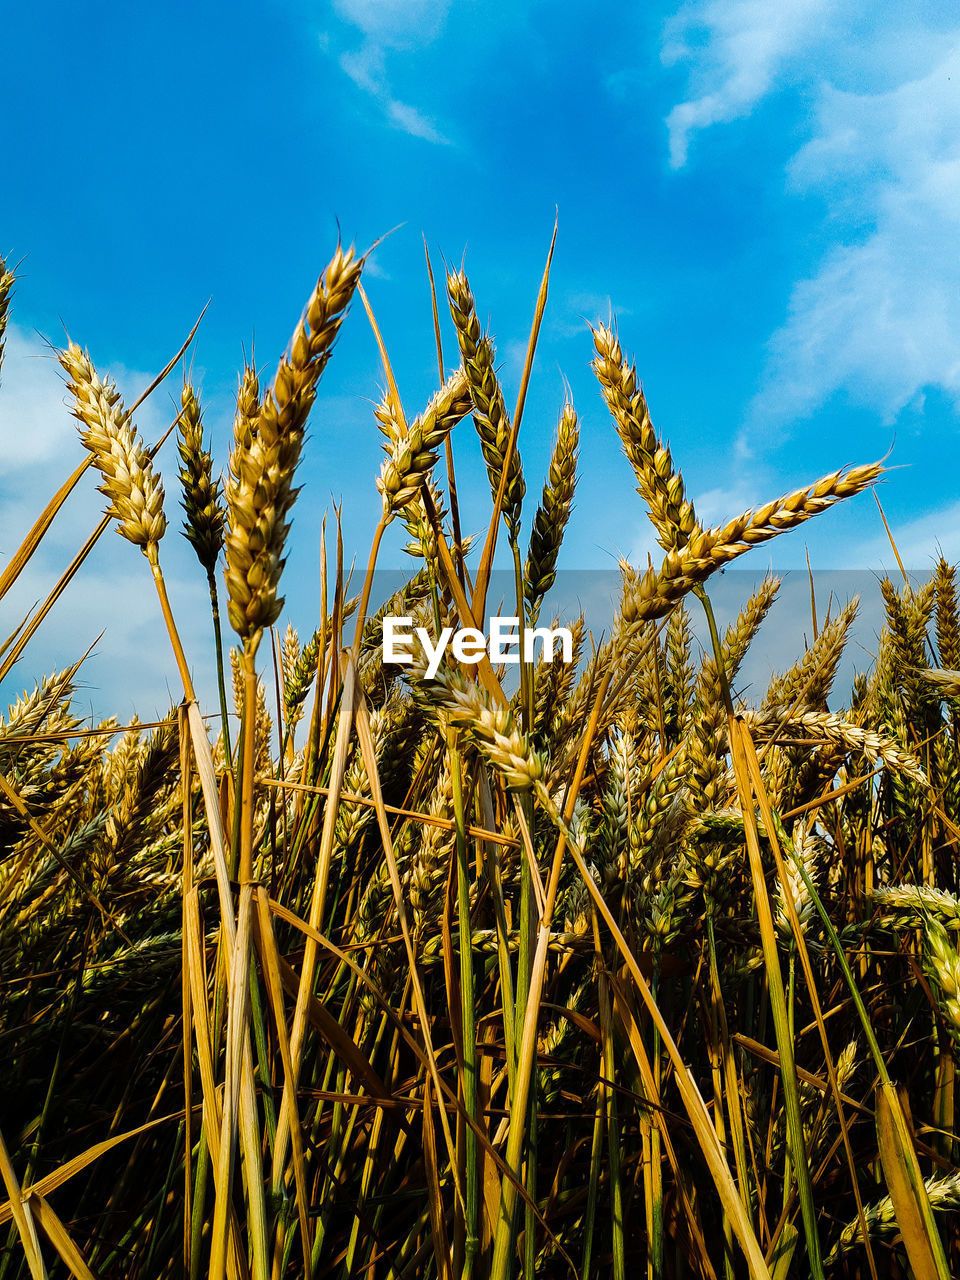 growth, plant, sky, beauty in nature, tranquility, agriculture, field, cereal plant, nature, day, crop, farm, rural scene, no people, landscape, cloud - sky, land, close-up, blue, sunlight, outdoors, stalk